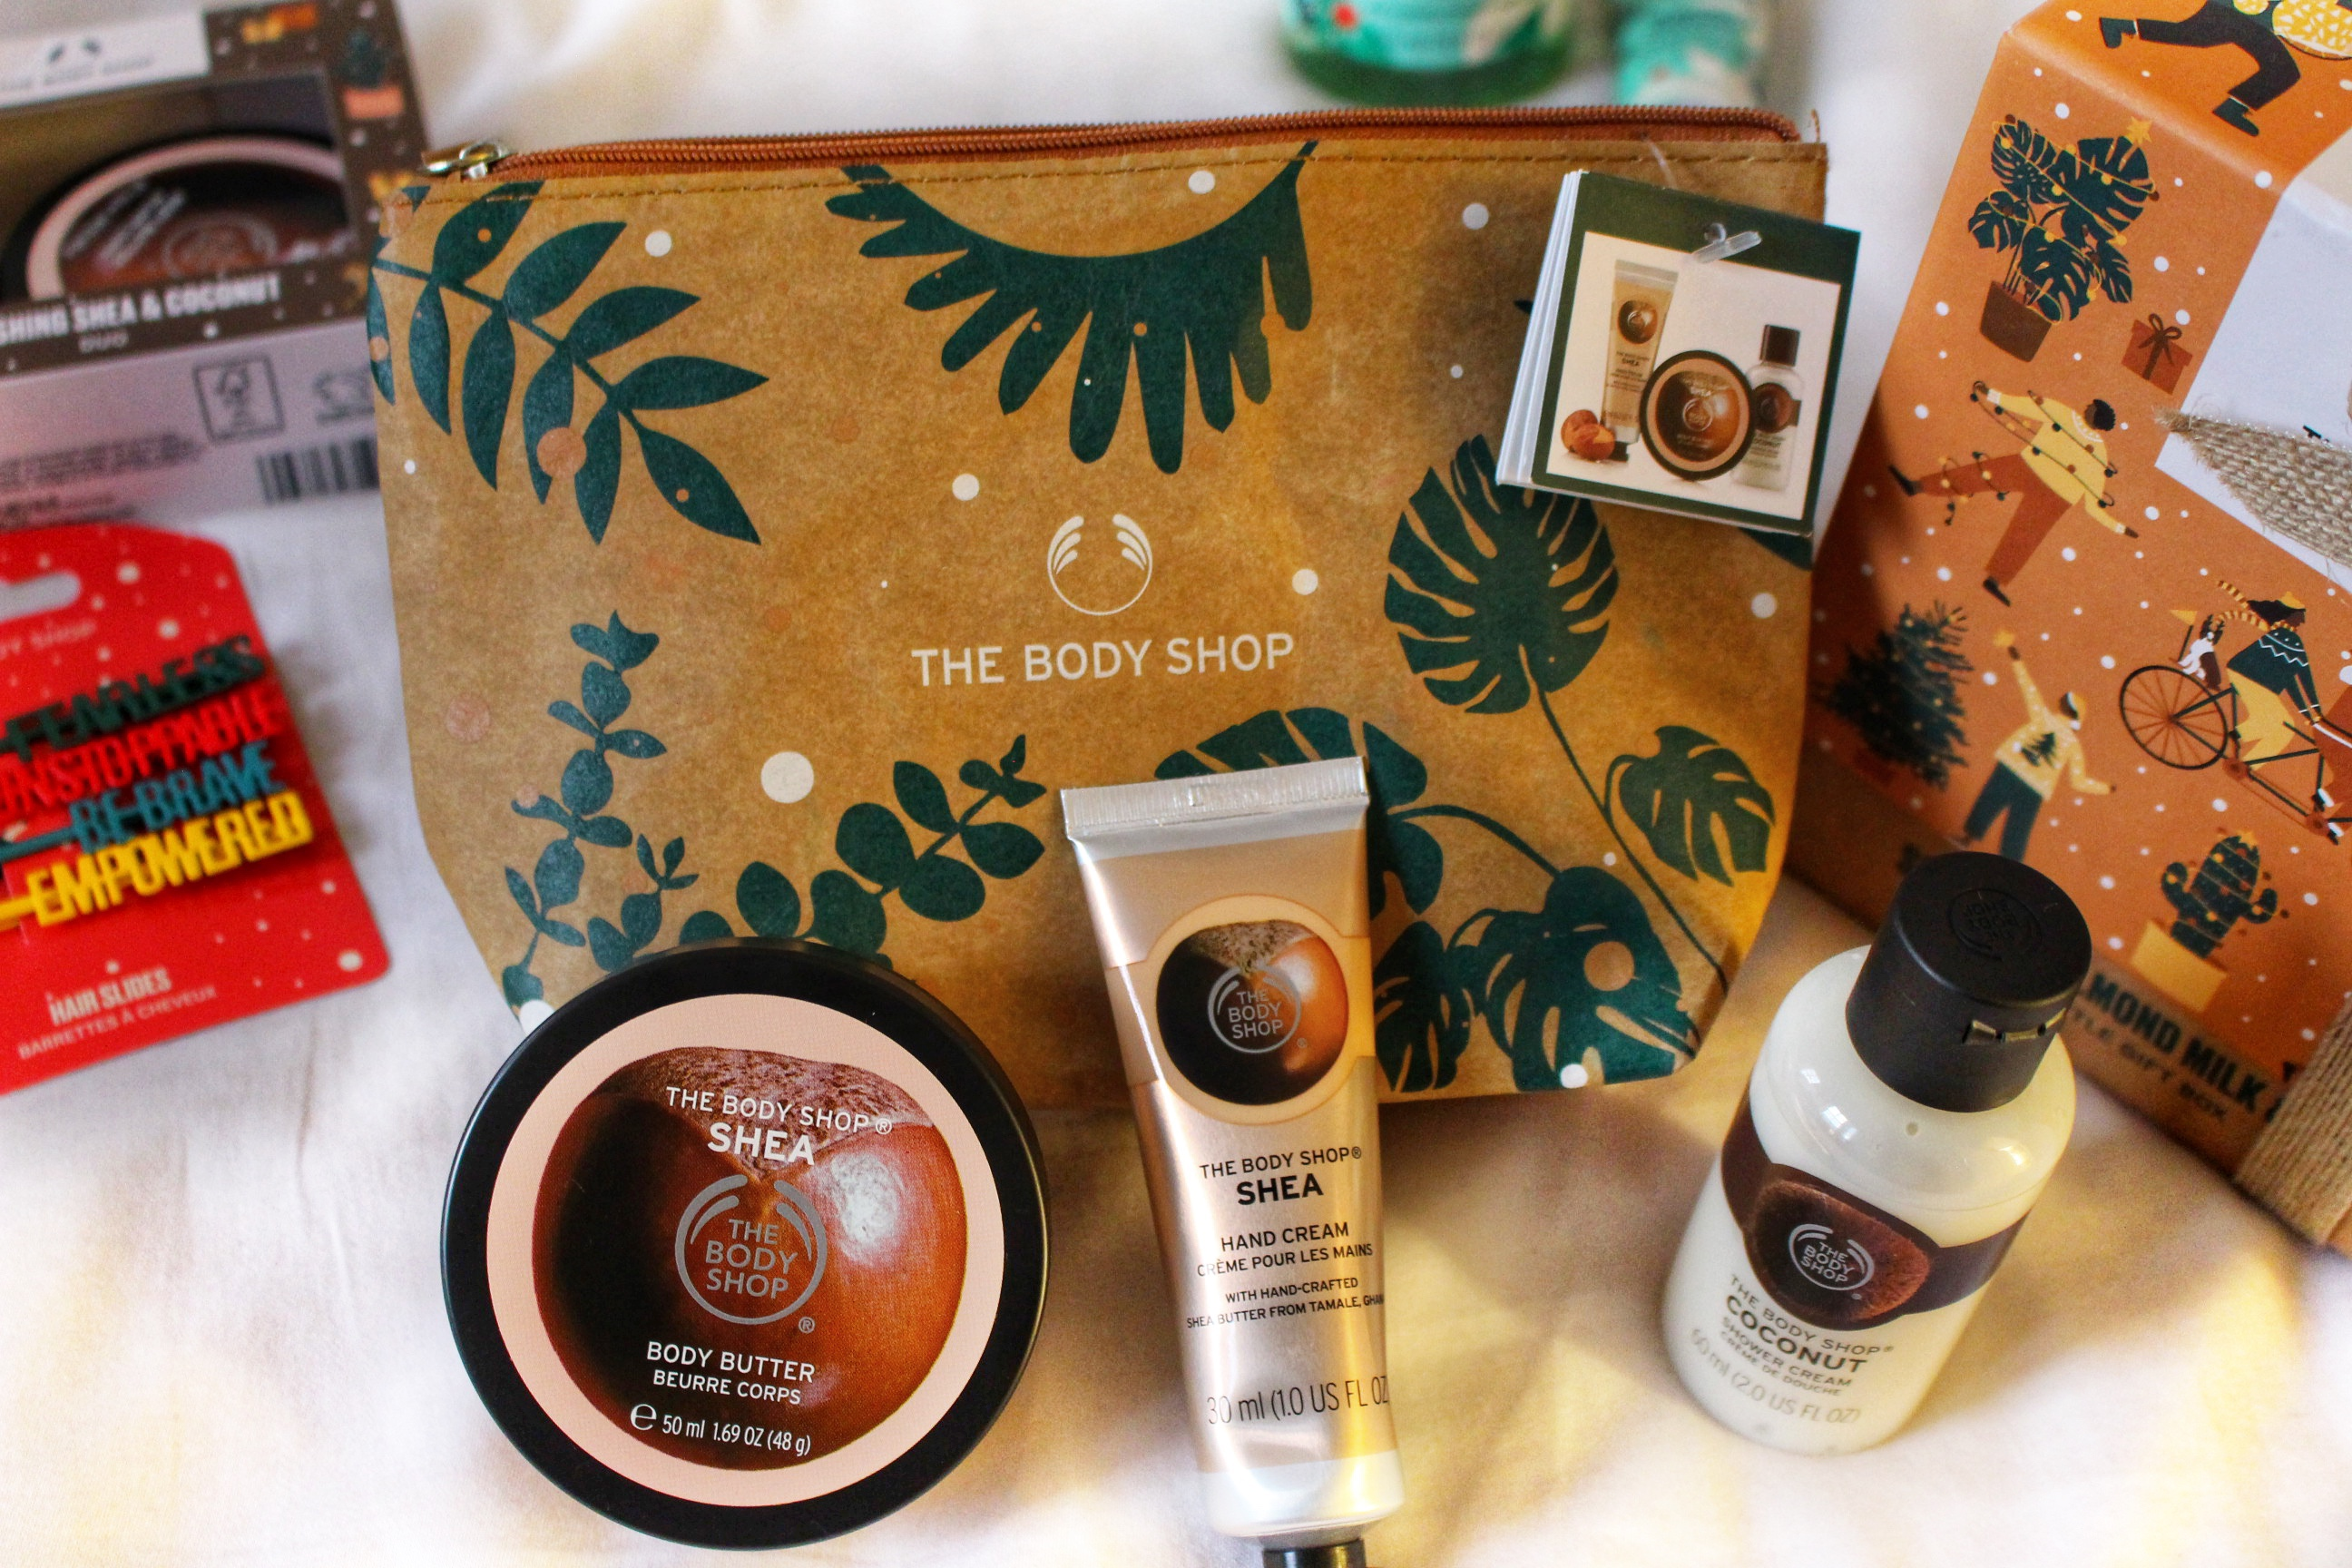 beauty-pouch-shea-handcream-shea-body-butter-the-bodyshop-red-fragrant-christmas-gift-guide-raychel-says